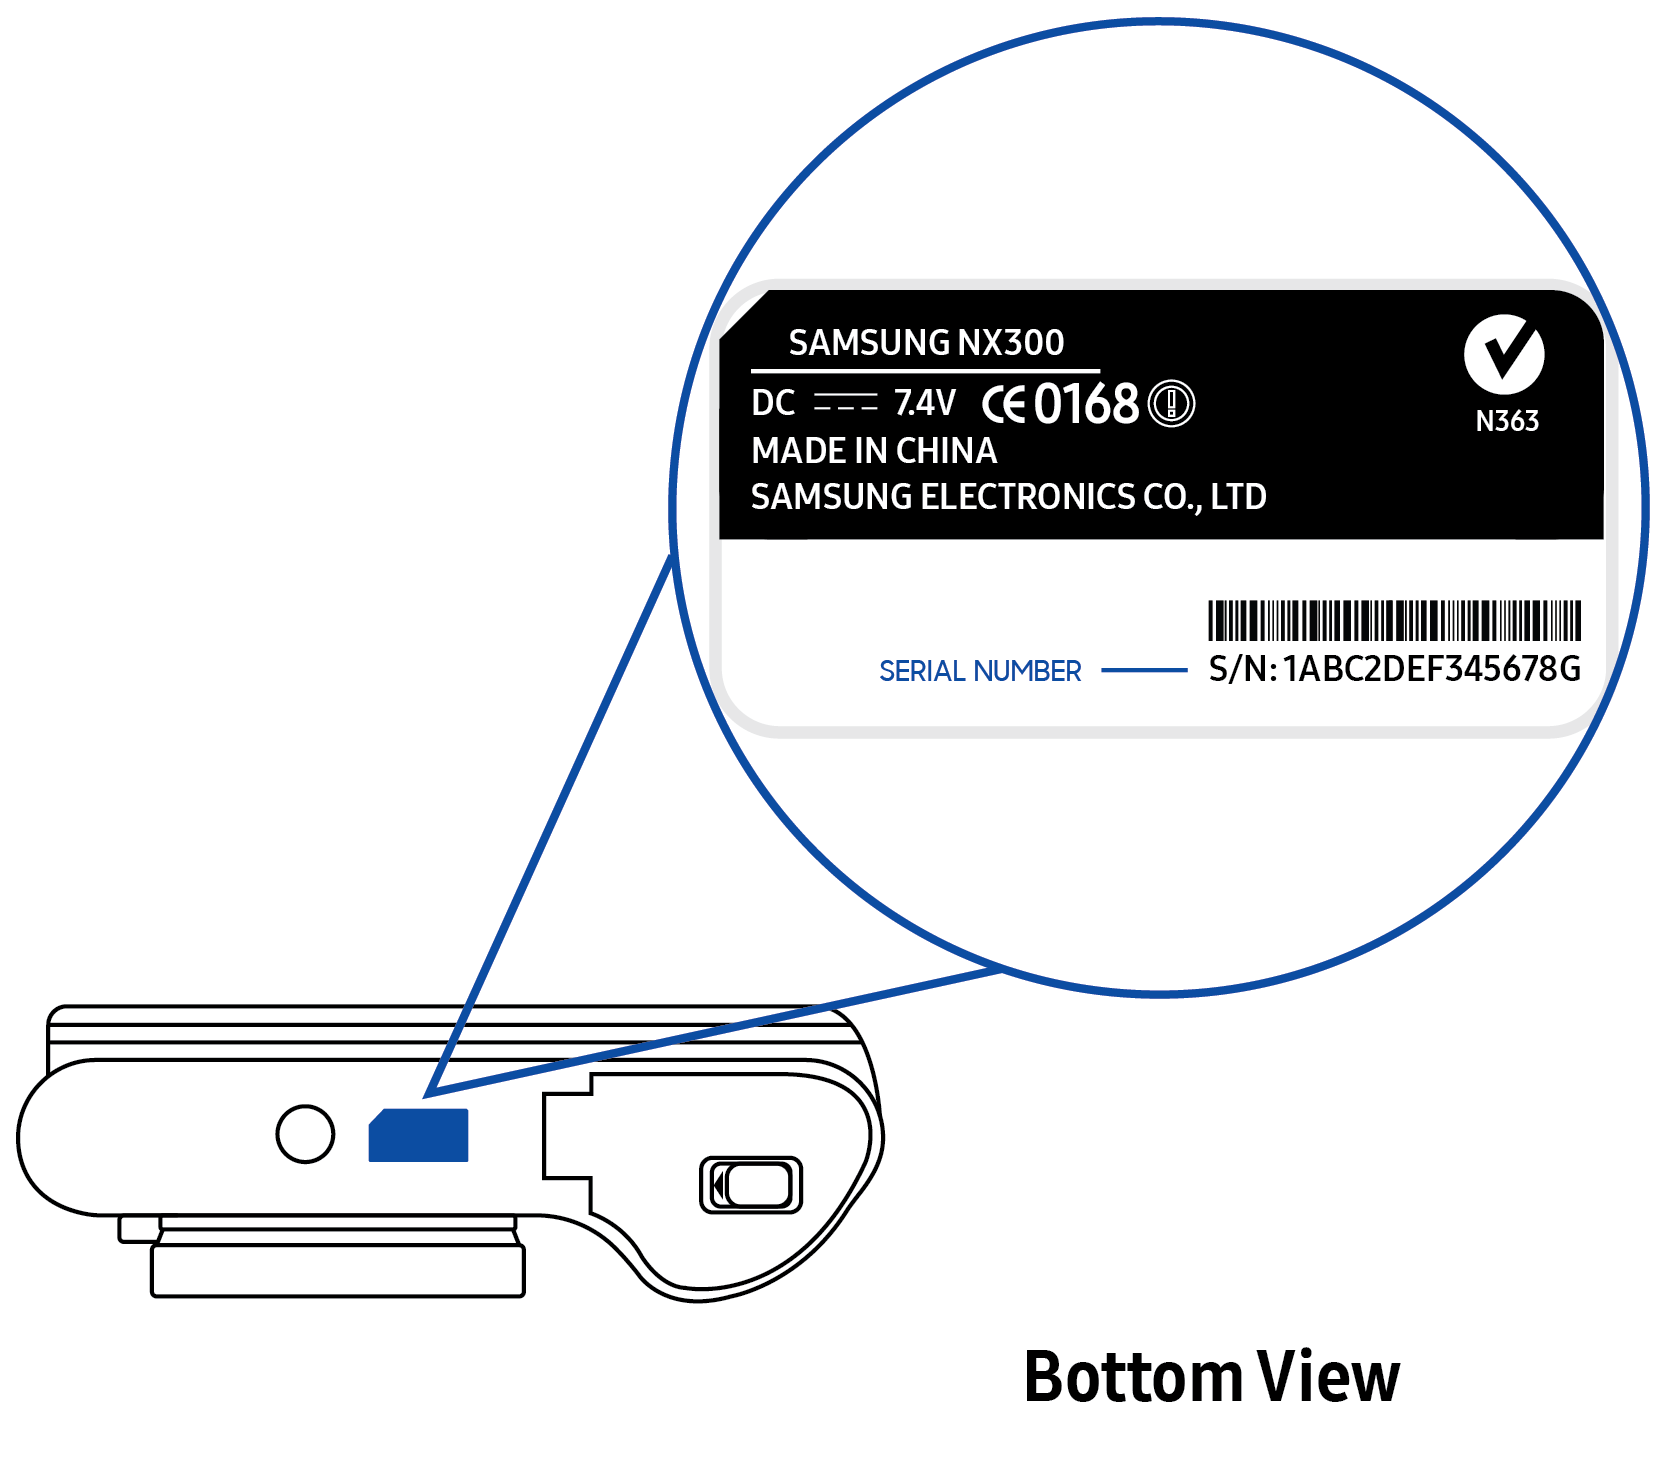 How to find Model and Serial Number of your Samsung Product?